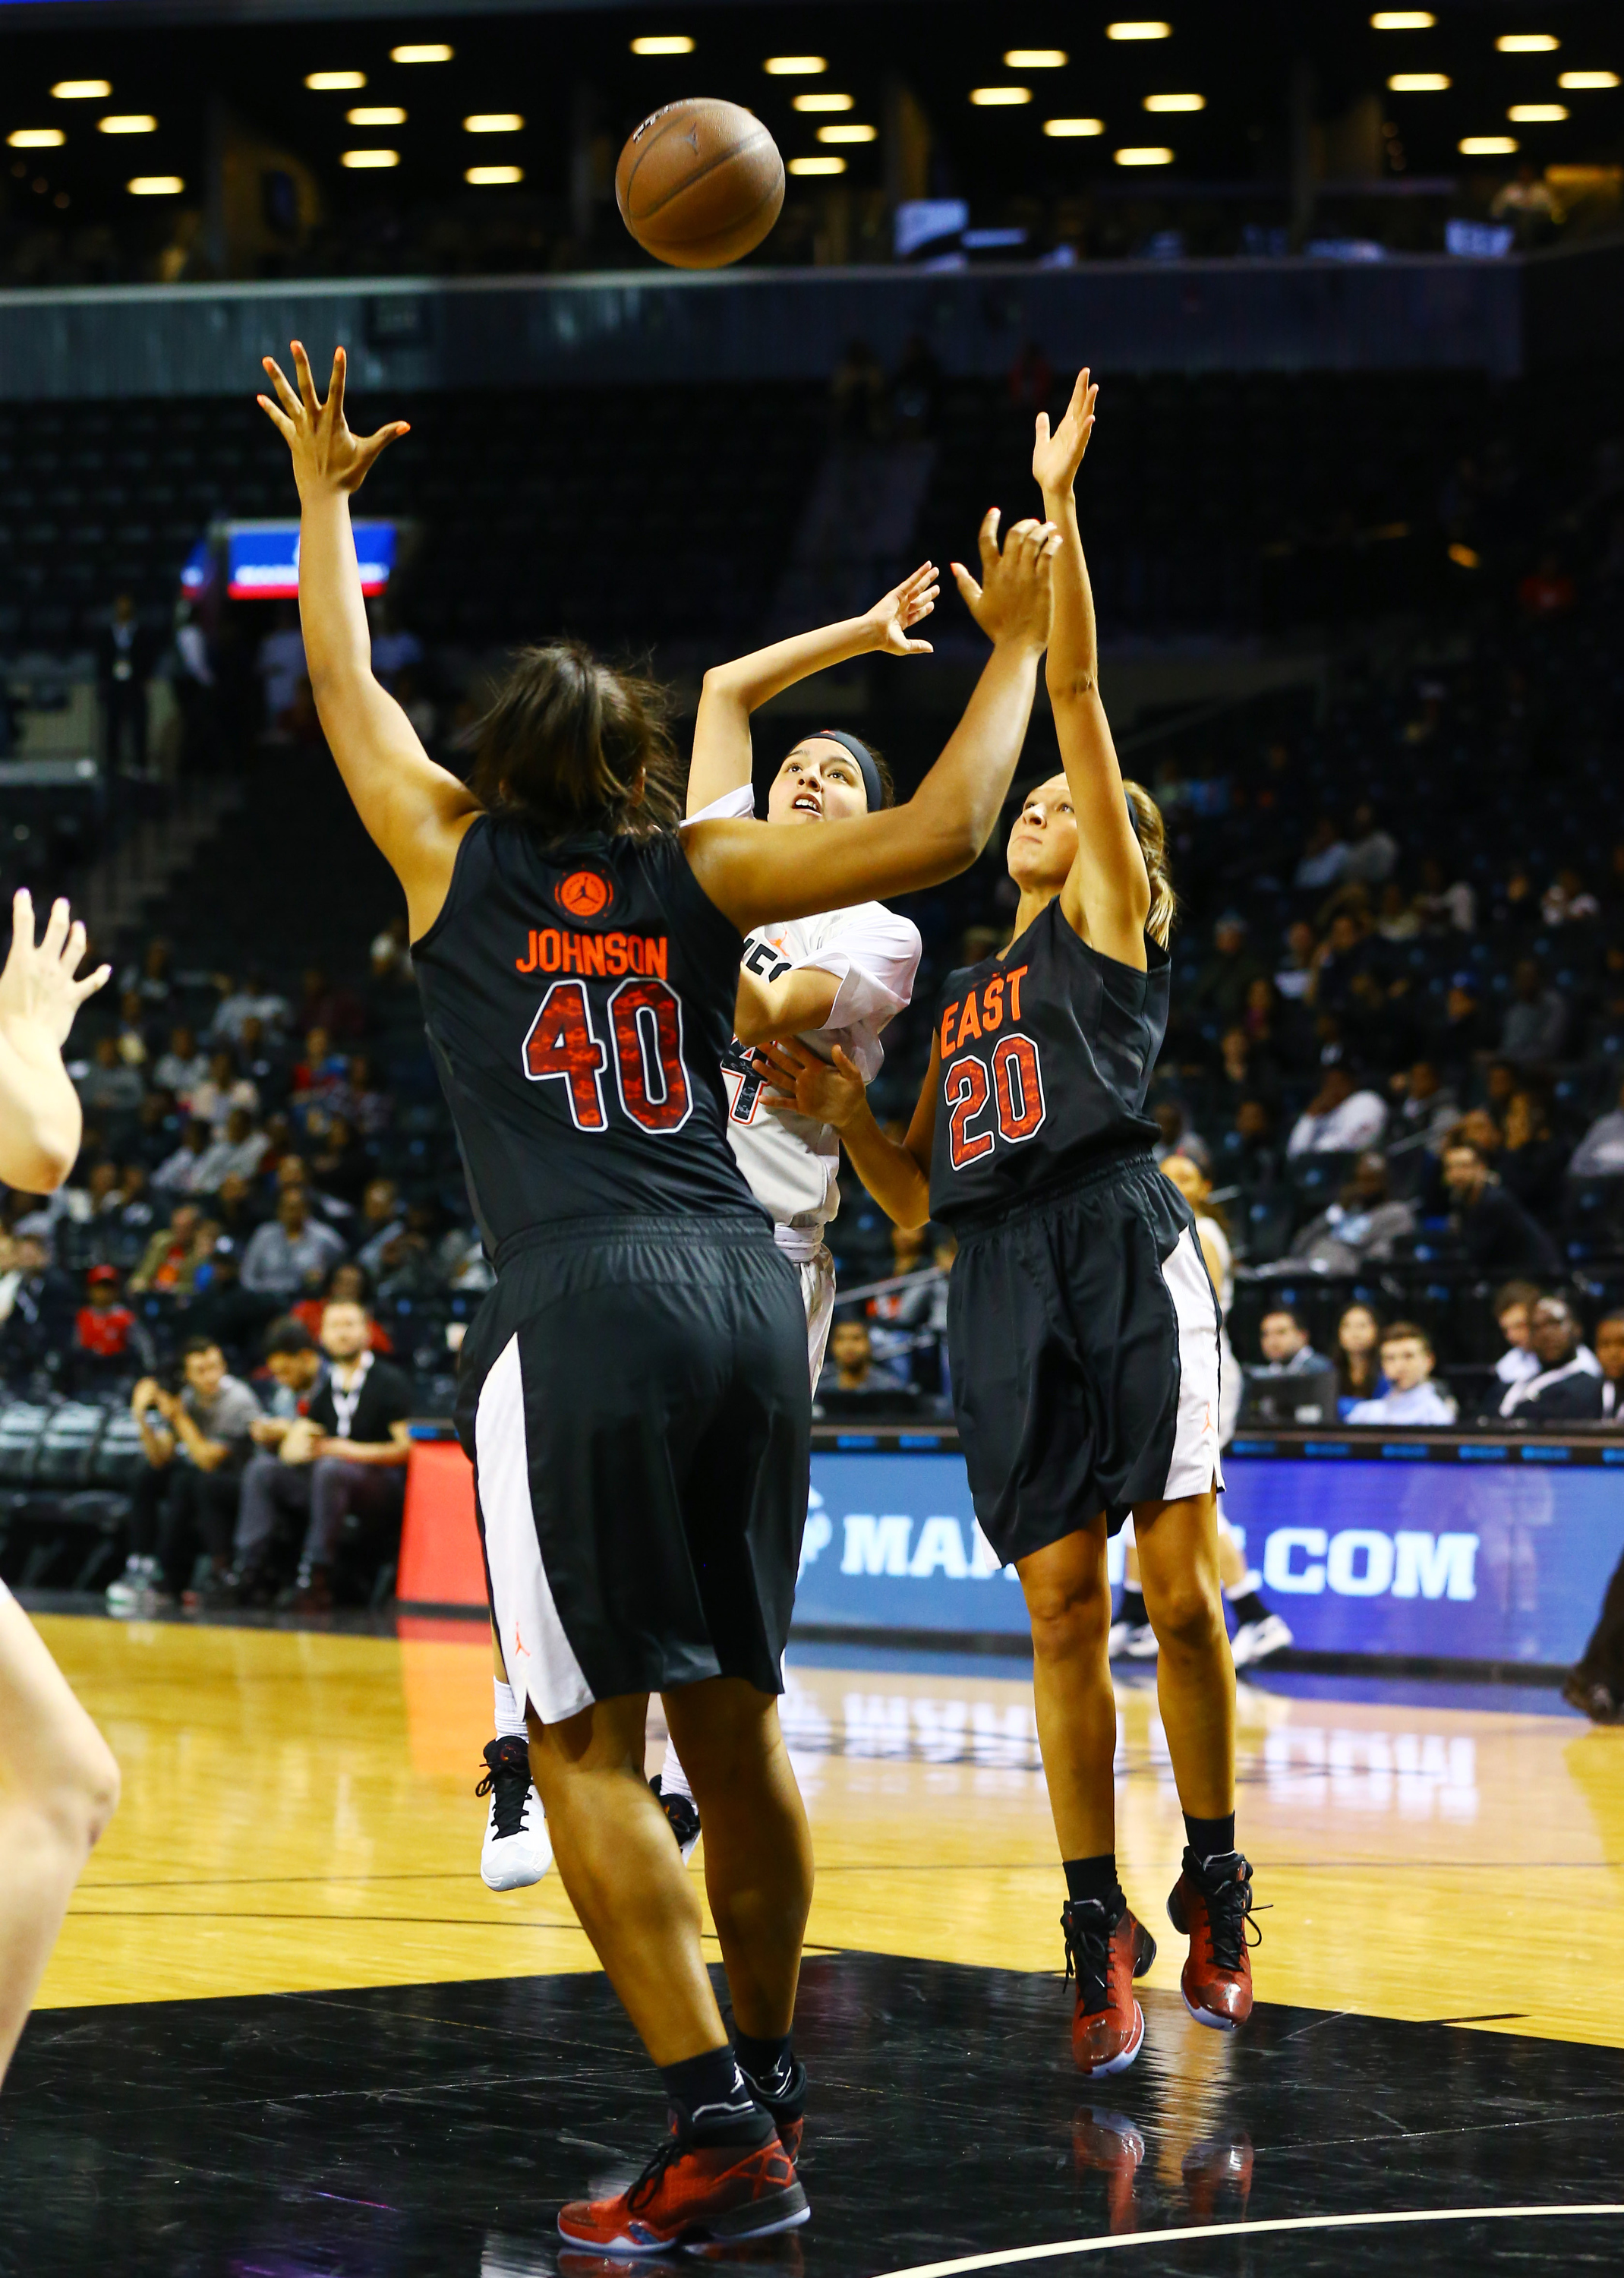 4/15/2016 3:30PM -- New York, NY, U.S.A  -- West Team guard Amber Ramirez (14) takes a shot while being defended by East Team guard Lindsey Corsaro (20) and center Ciera Johnson (40) during the second half of the Jordan Brand Classic Girls National Game at Barclay's Center.The West defeated the East 100-94. Photo by Andy Marlin-USA TODAY  Sports Images, Gannett ORG XMIT:  US 134691 Jordan hoops 4/15/2016 [Via MerlinFTP Drop]